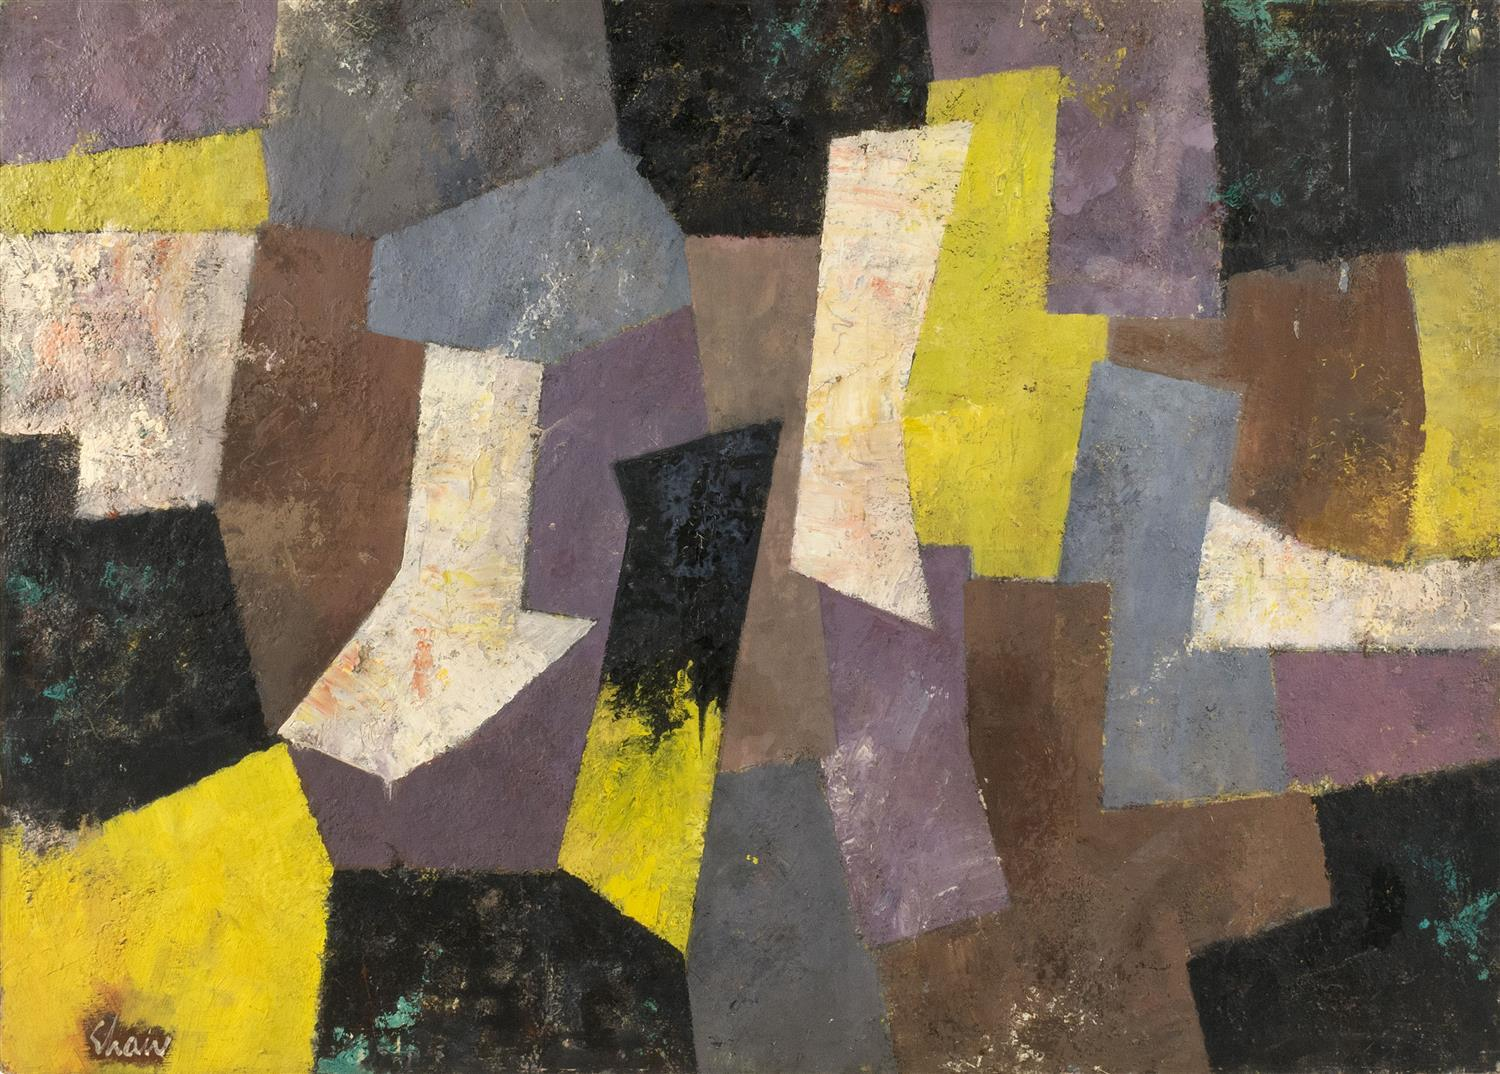 """CHARLES GREEN SHAW, New York, 1892-1974, """"Harmony in Broken Colors""""., Oil on canvas, 29"""" x 41"""". Framed 30"""" x 42""""."""